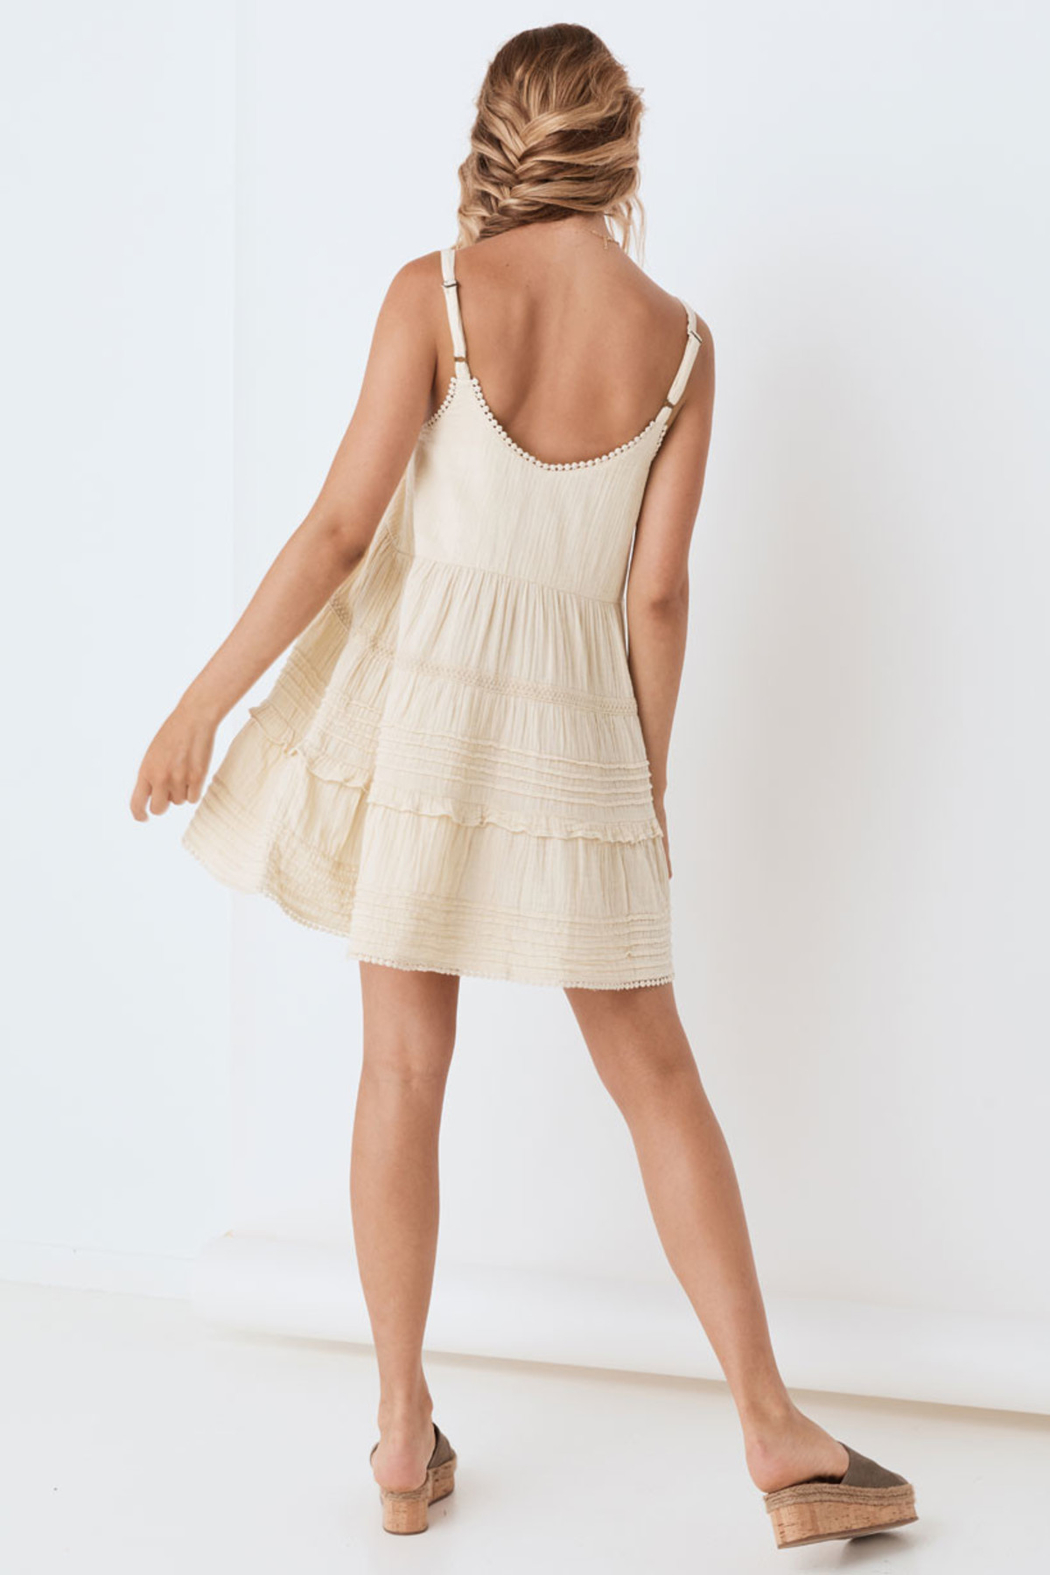 Spell & the Gypsy Collective Hanalei Strappy Mini Dress in Sand - Back Cropped Image